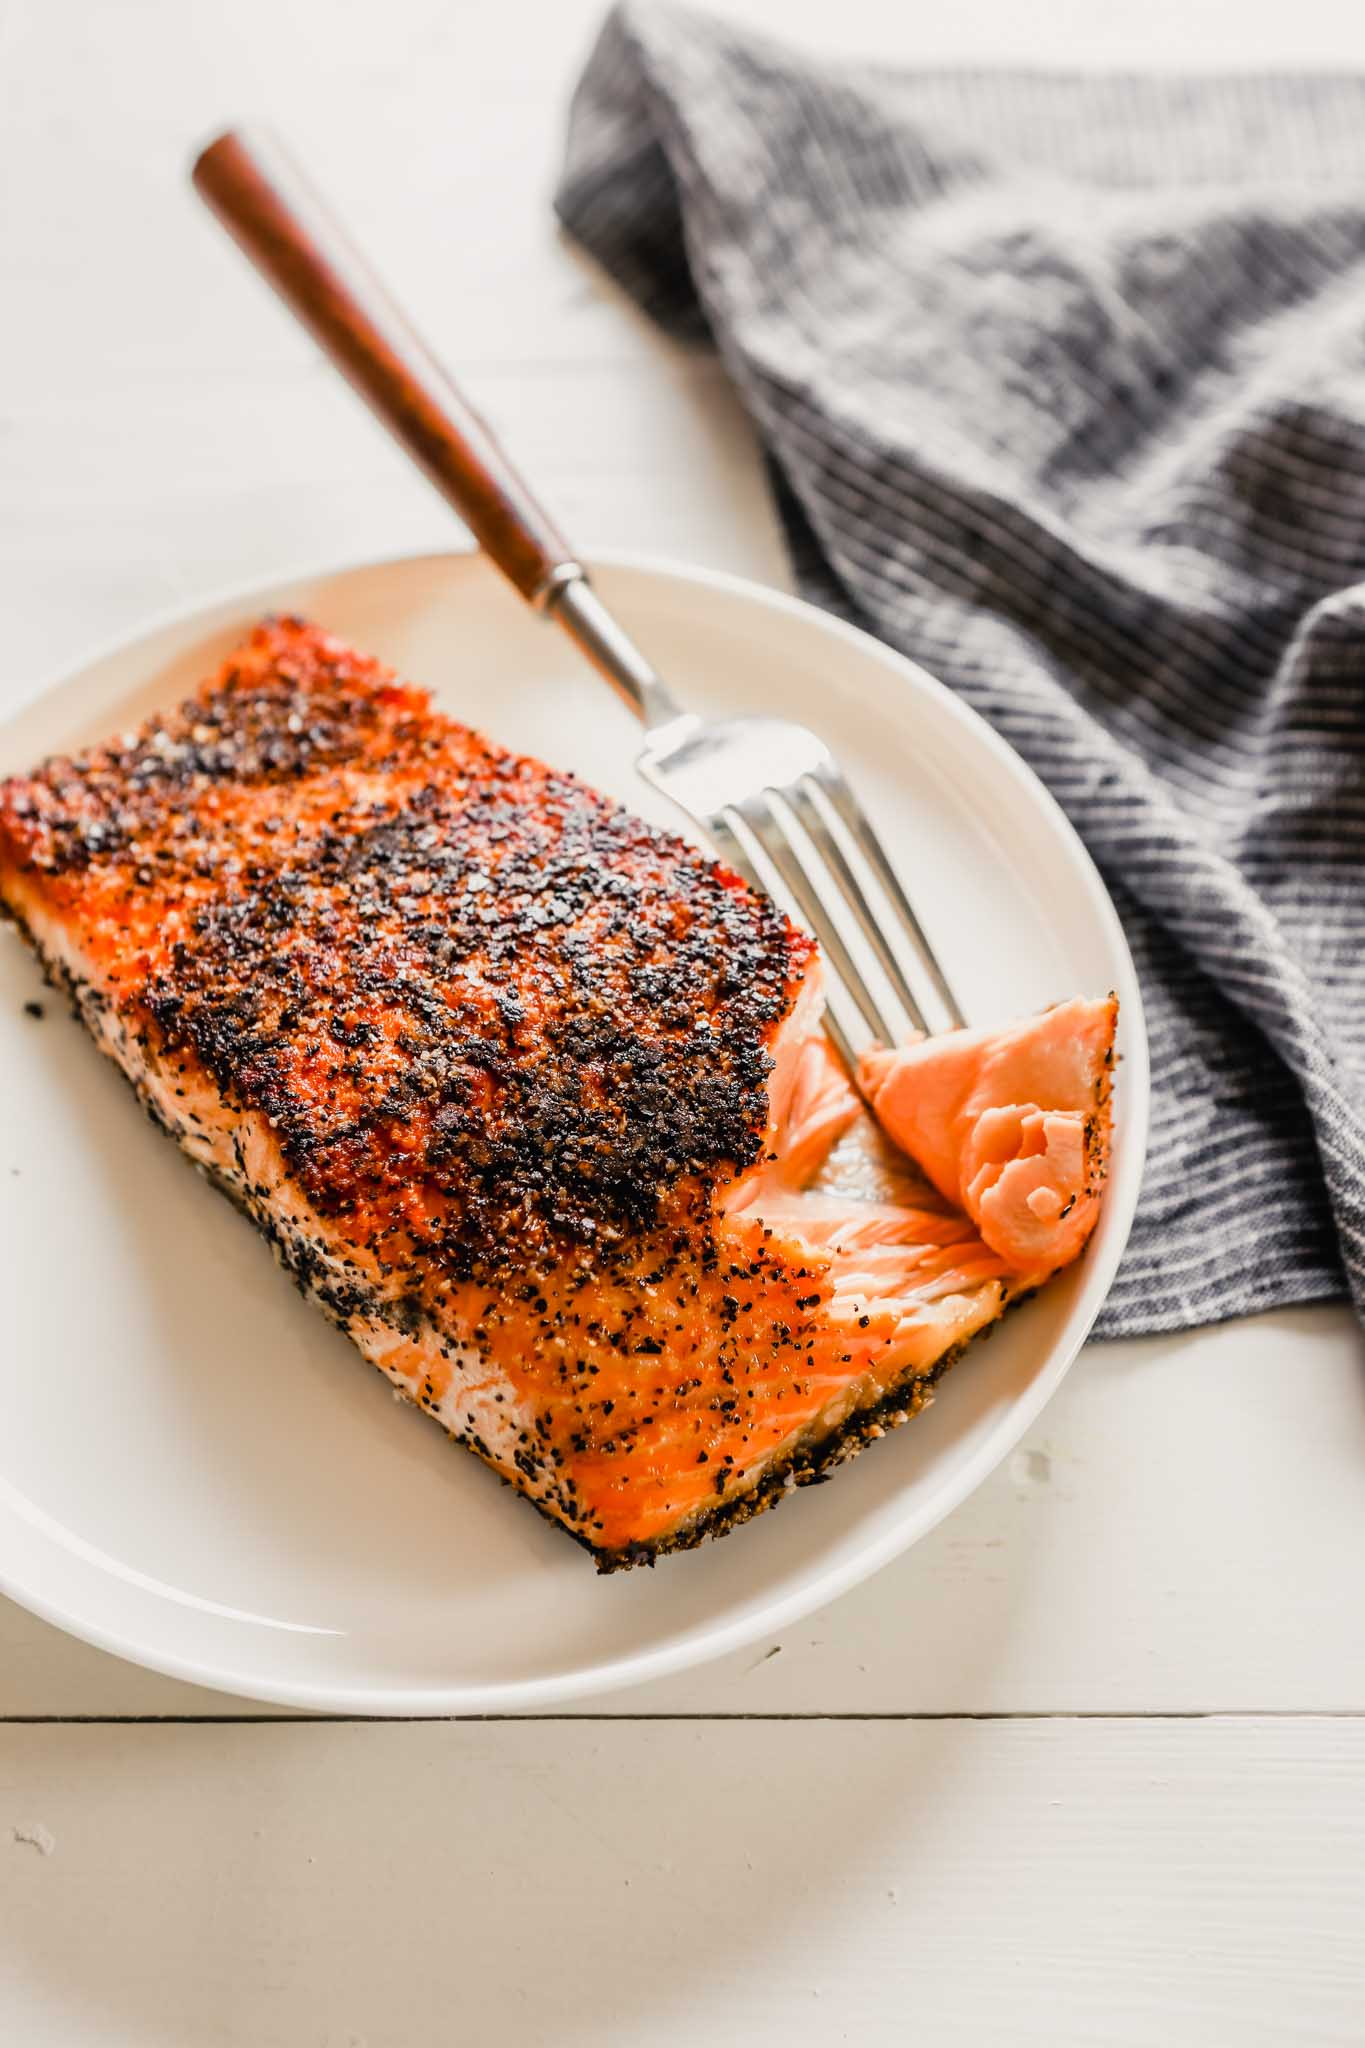 45-degree angle photo of crispy seared salmon on a white plate with a fork taking a piece off of it